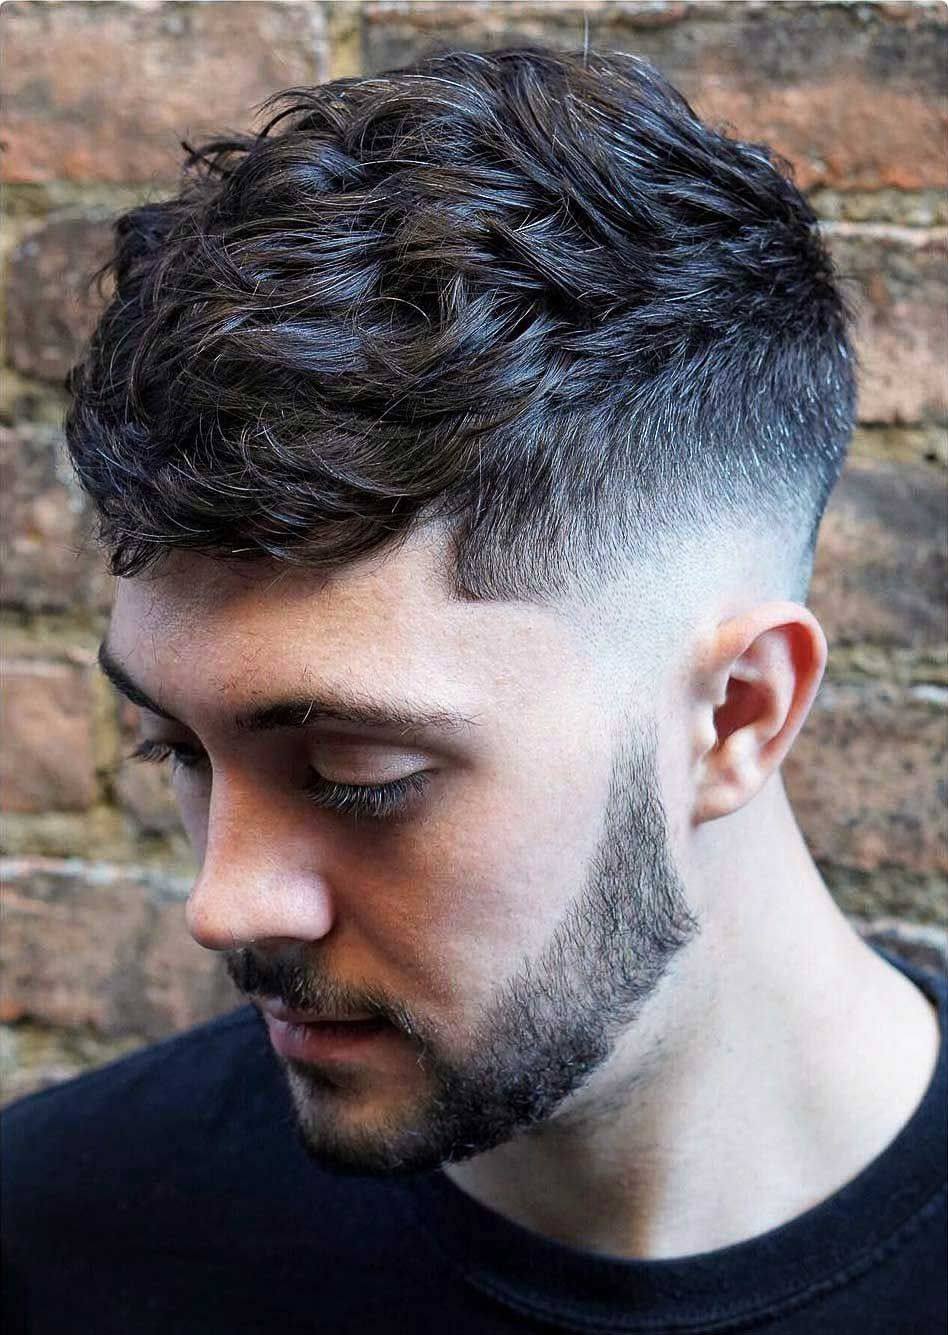 Low skin fade haircut men  timeless french crop haircut variations in   styling guide